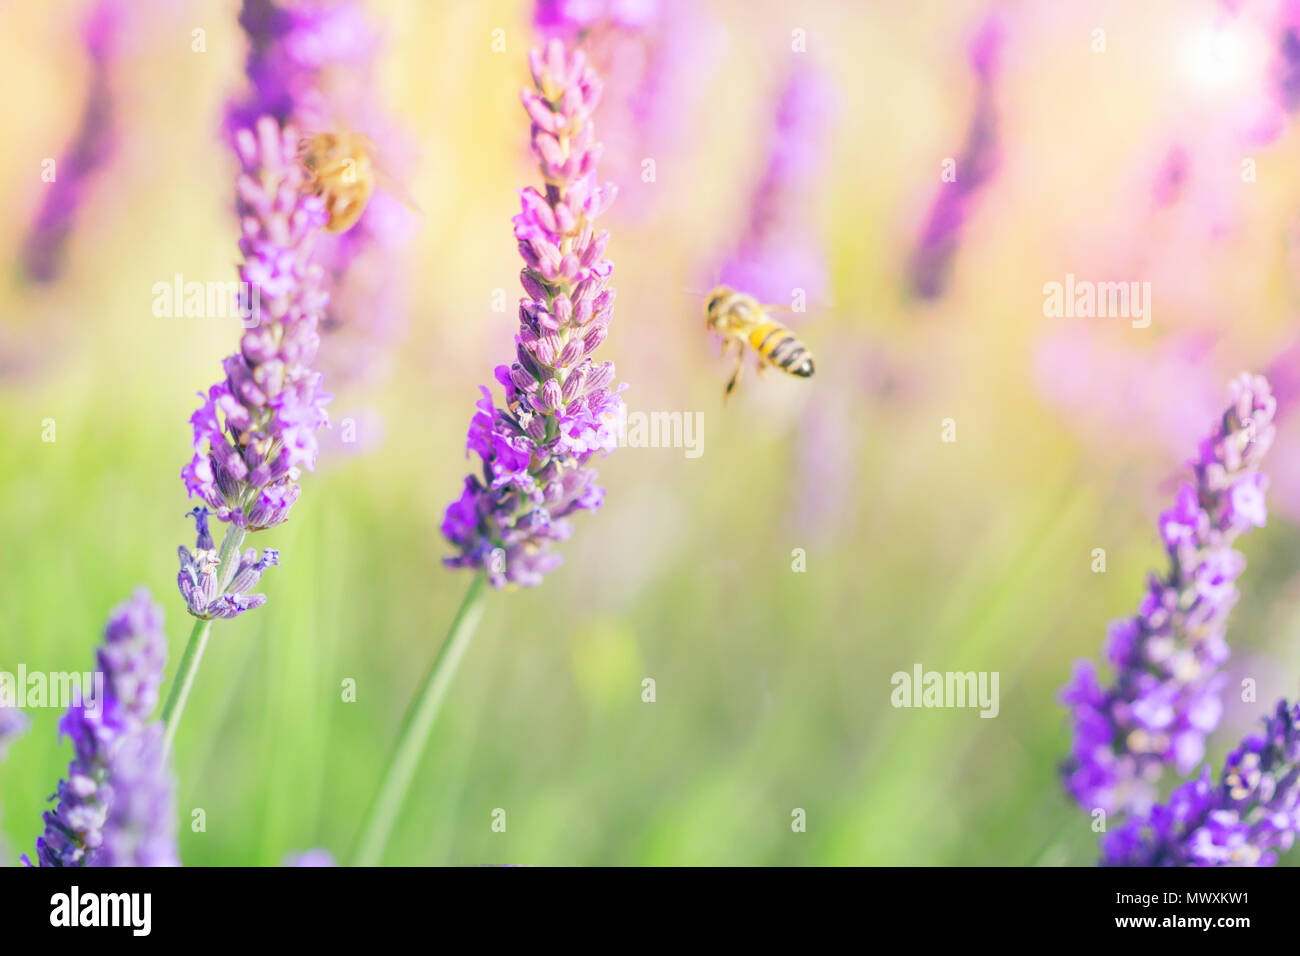 Lavender field, lavenders flowers with honey bee on the flowers at sunlight in a soft focus, pastel colors and blur background. Violet lavender field  - Stock Image